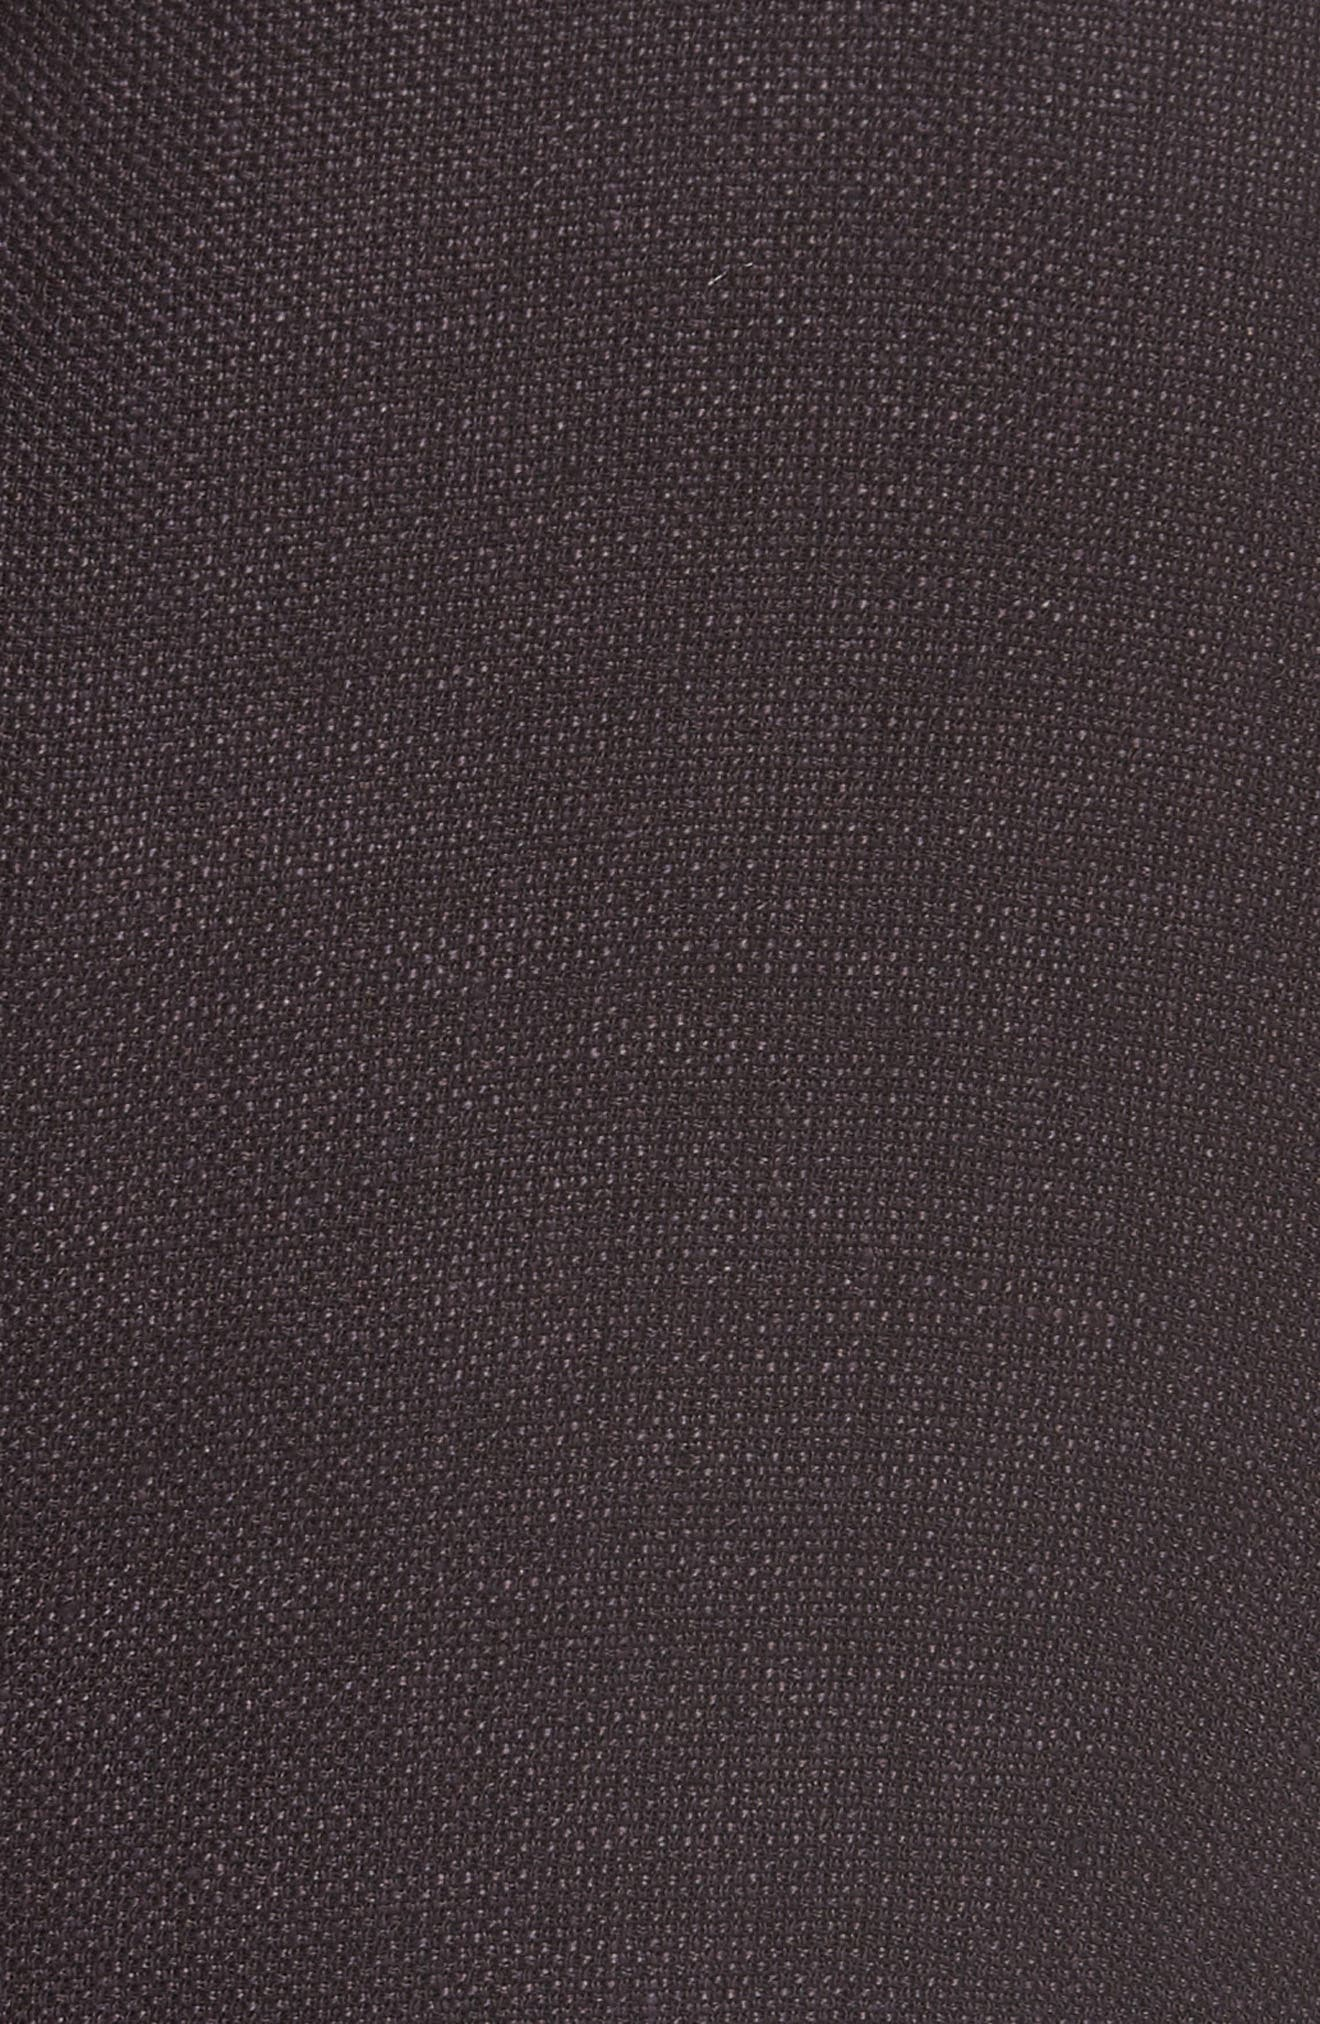 Trim Fit Linen Blend Blazer,                             Alternate thumbnail 5, color,                             Aubergine